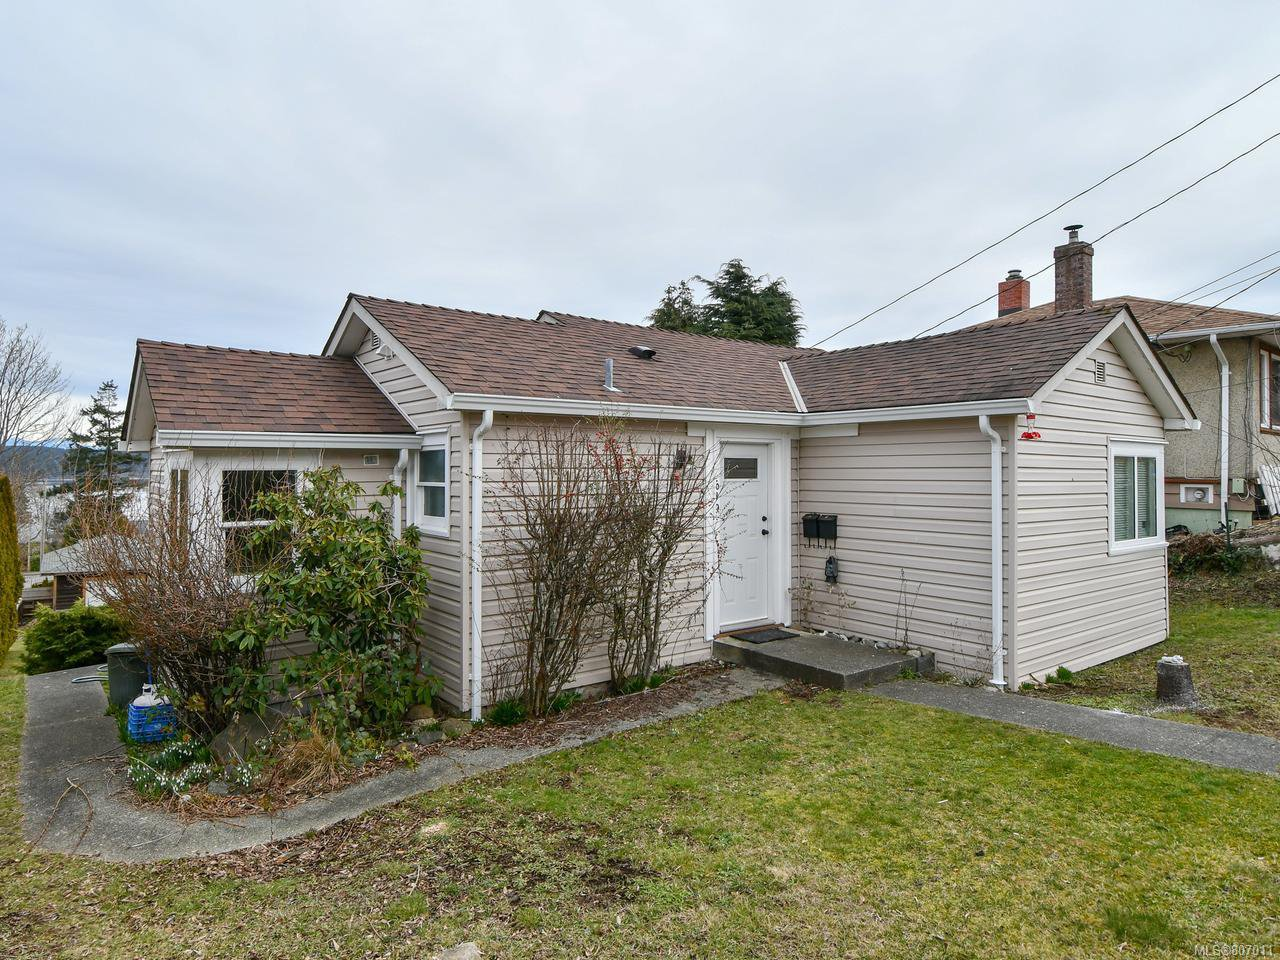 Main Photo: 639 Birch St in CAMPBELL RIVER: CR Campbell River Central House for sale (Campbell River)  : MLS®# 807011